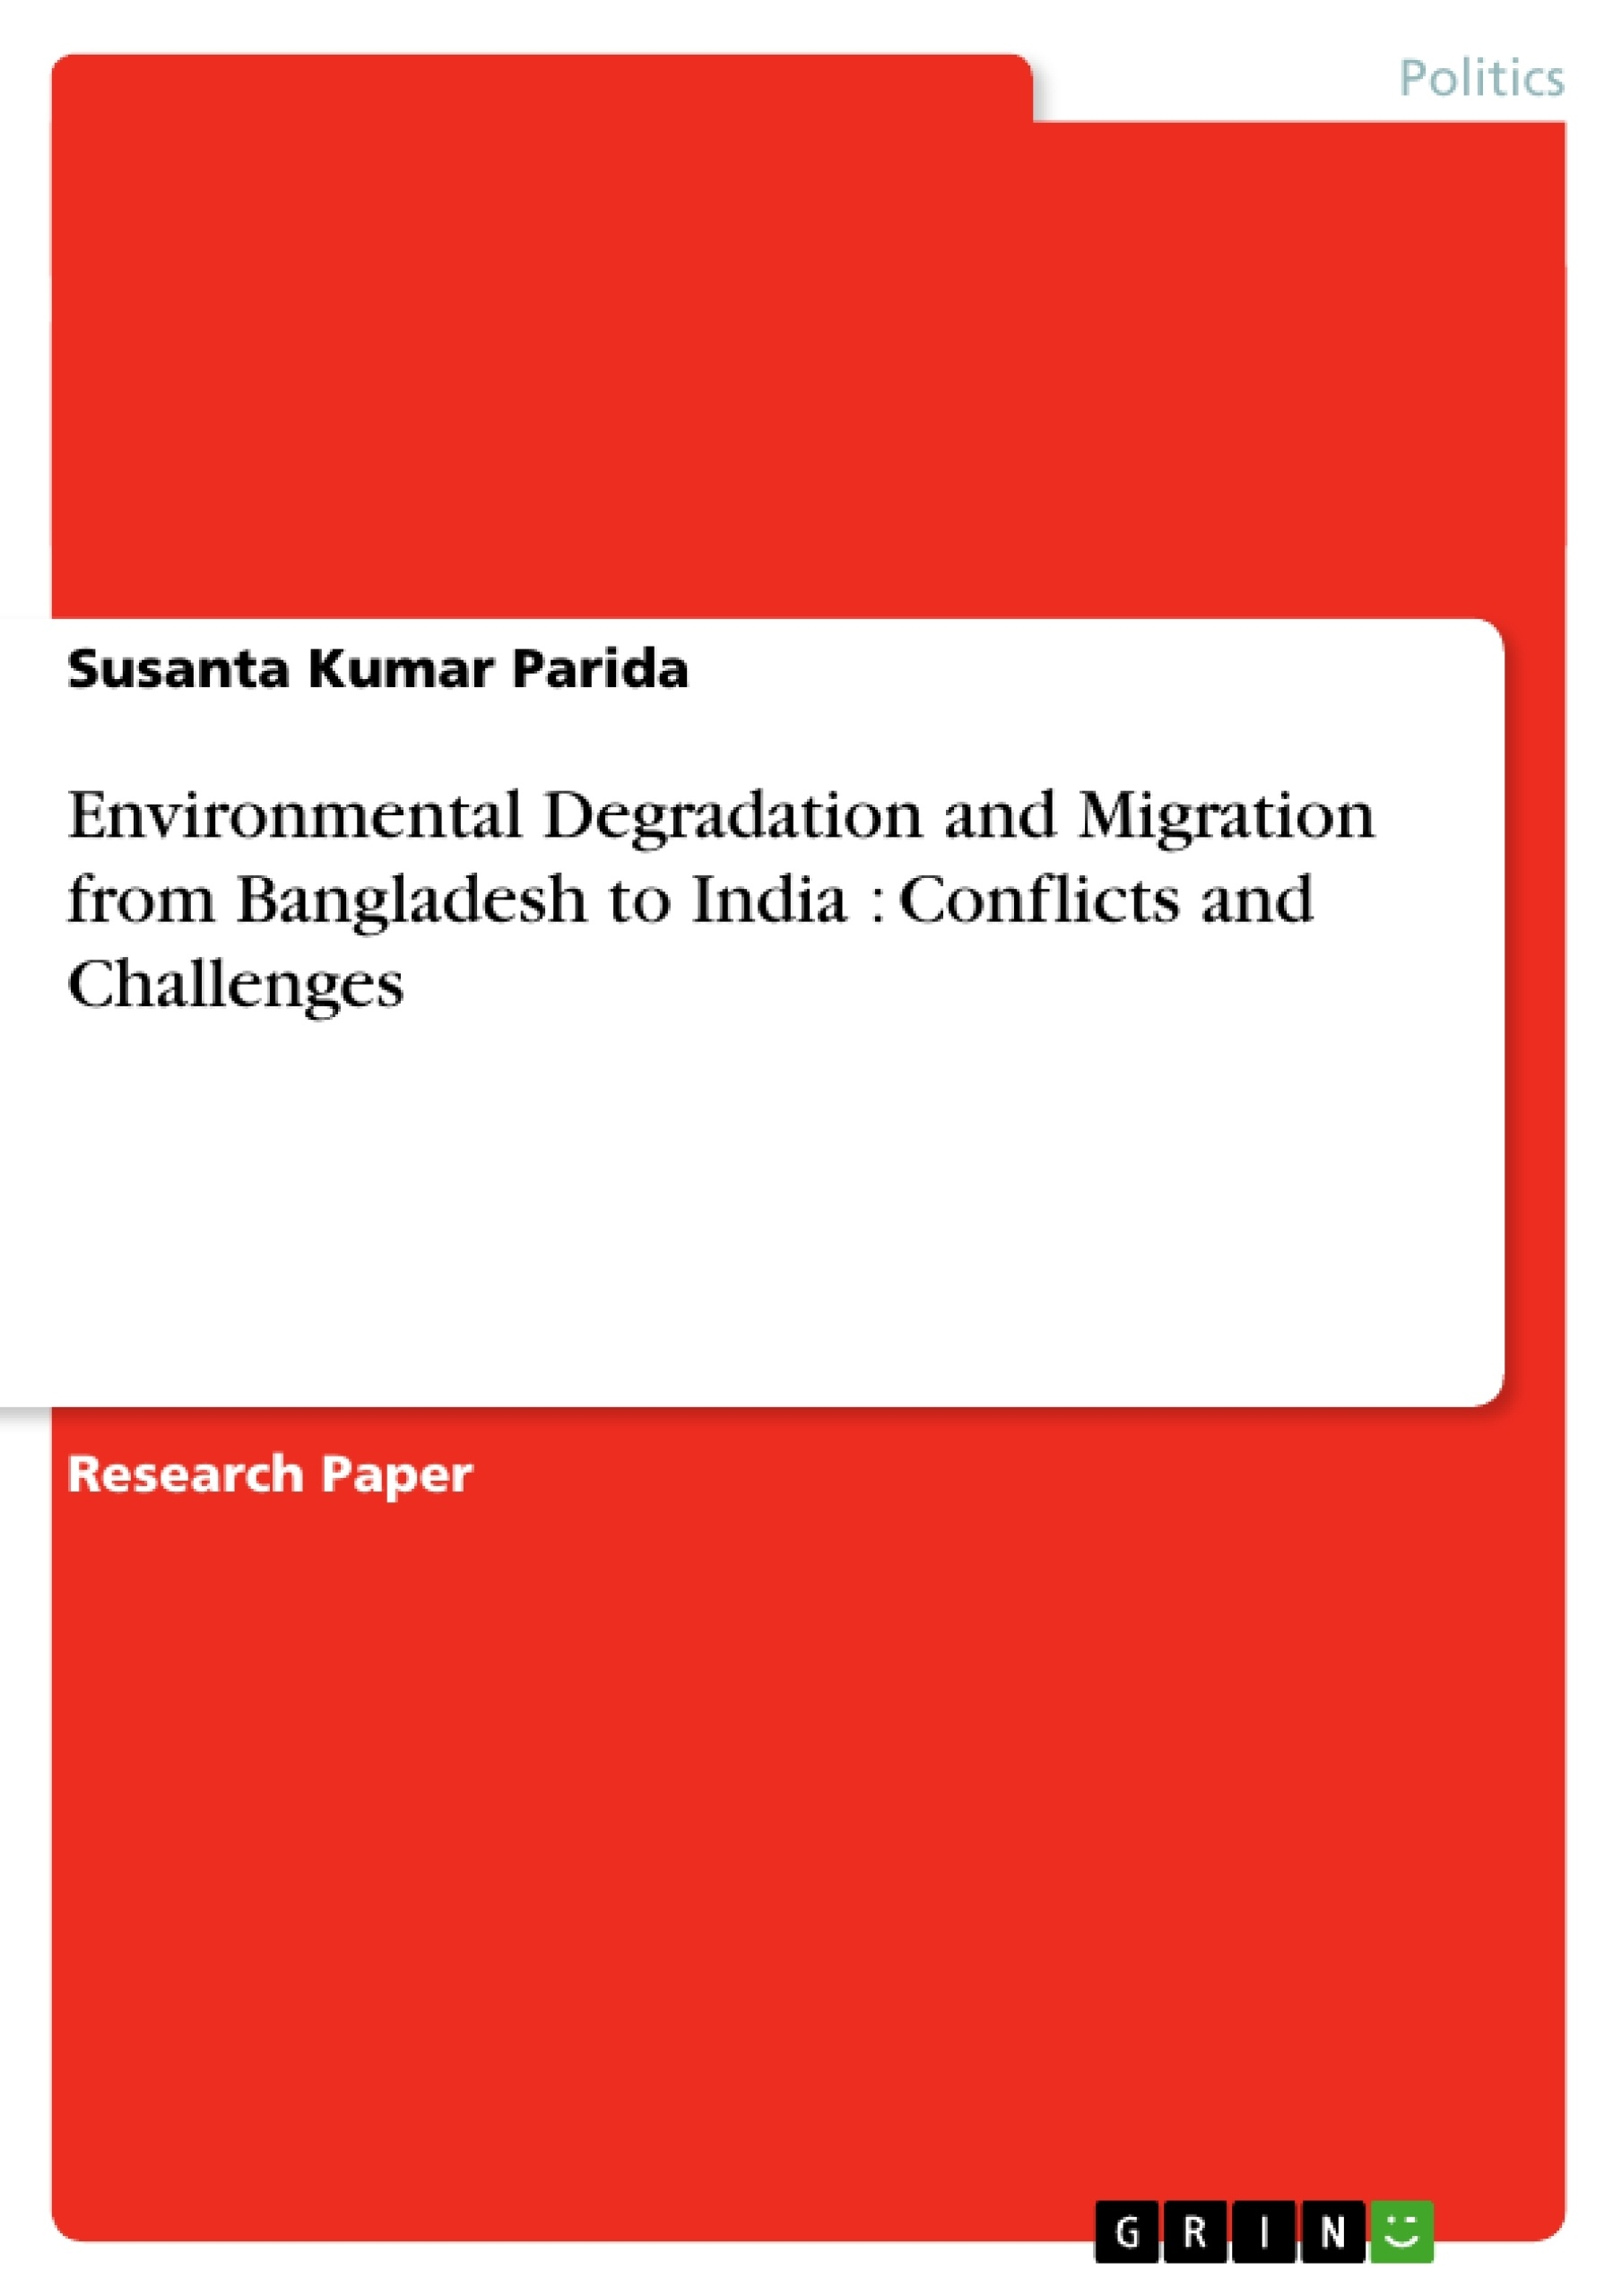 Title: Environmental Degradation and Migration from Bangladesh to India : Conflicts and Challenges